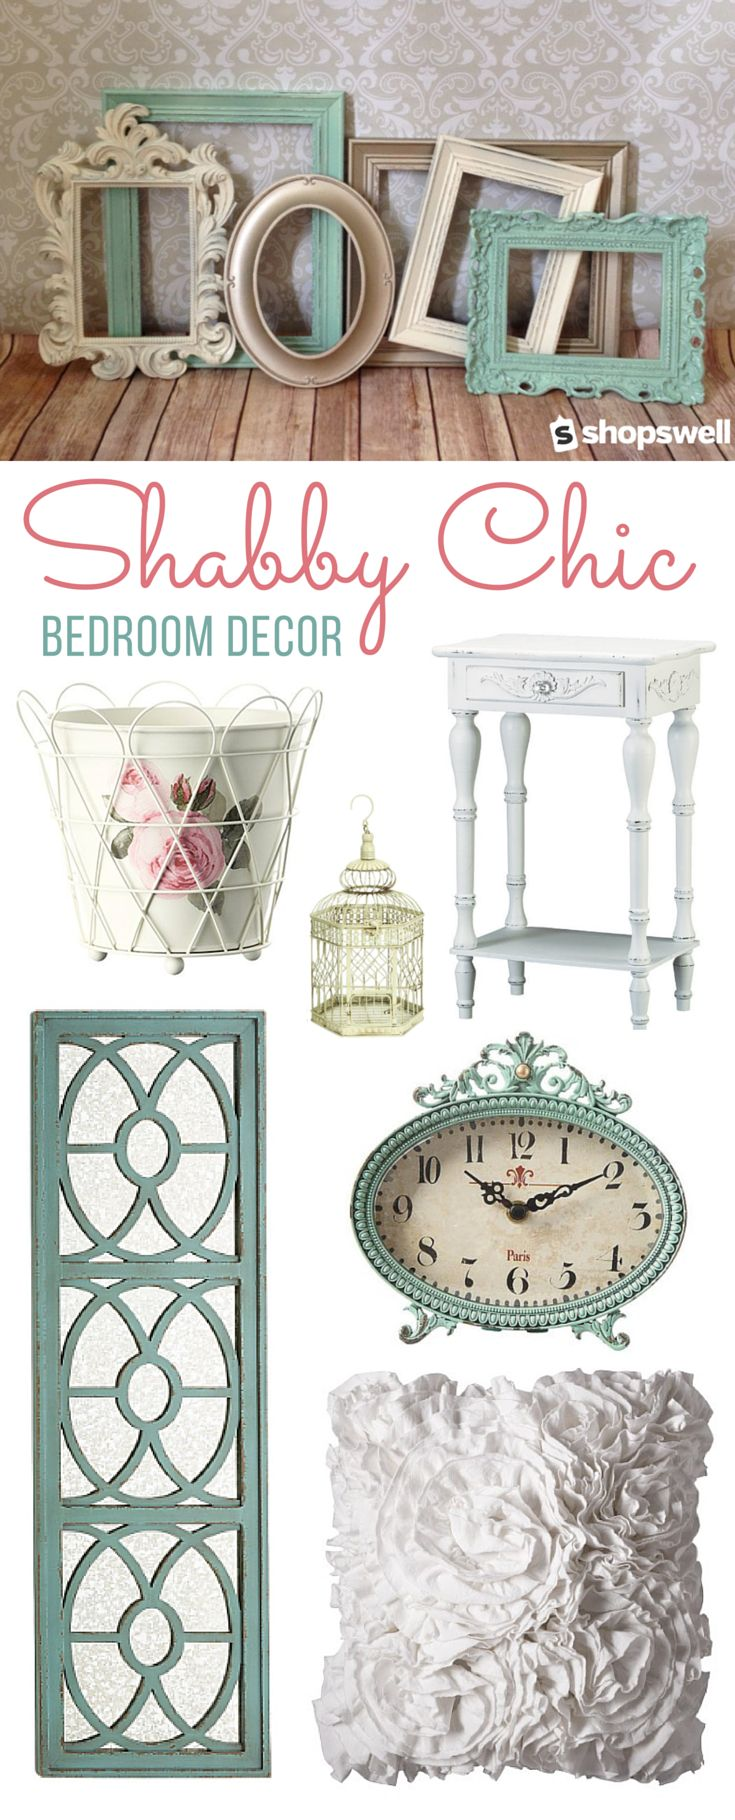 20 home decor essentials for the shabby chic bedroom - Country Chic Decor